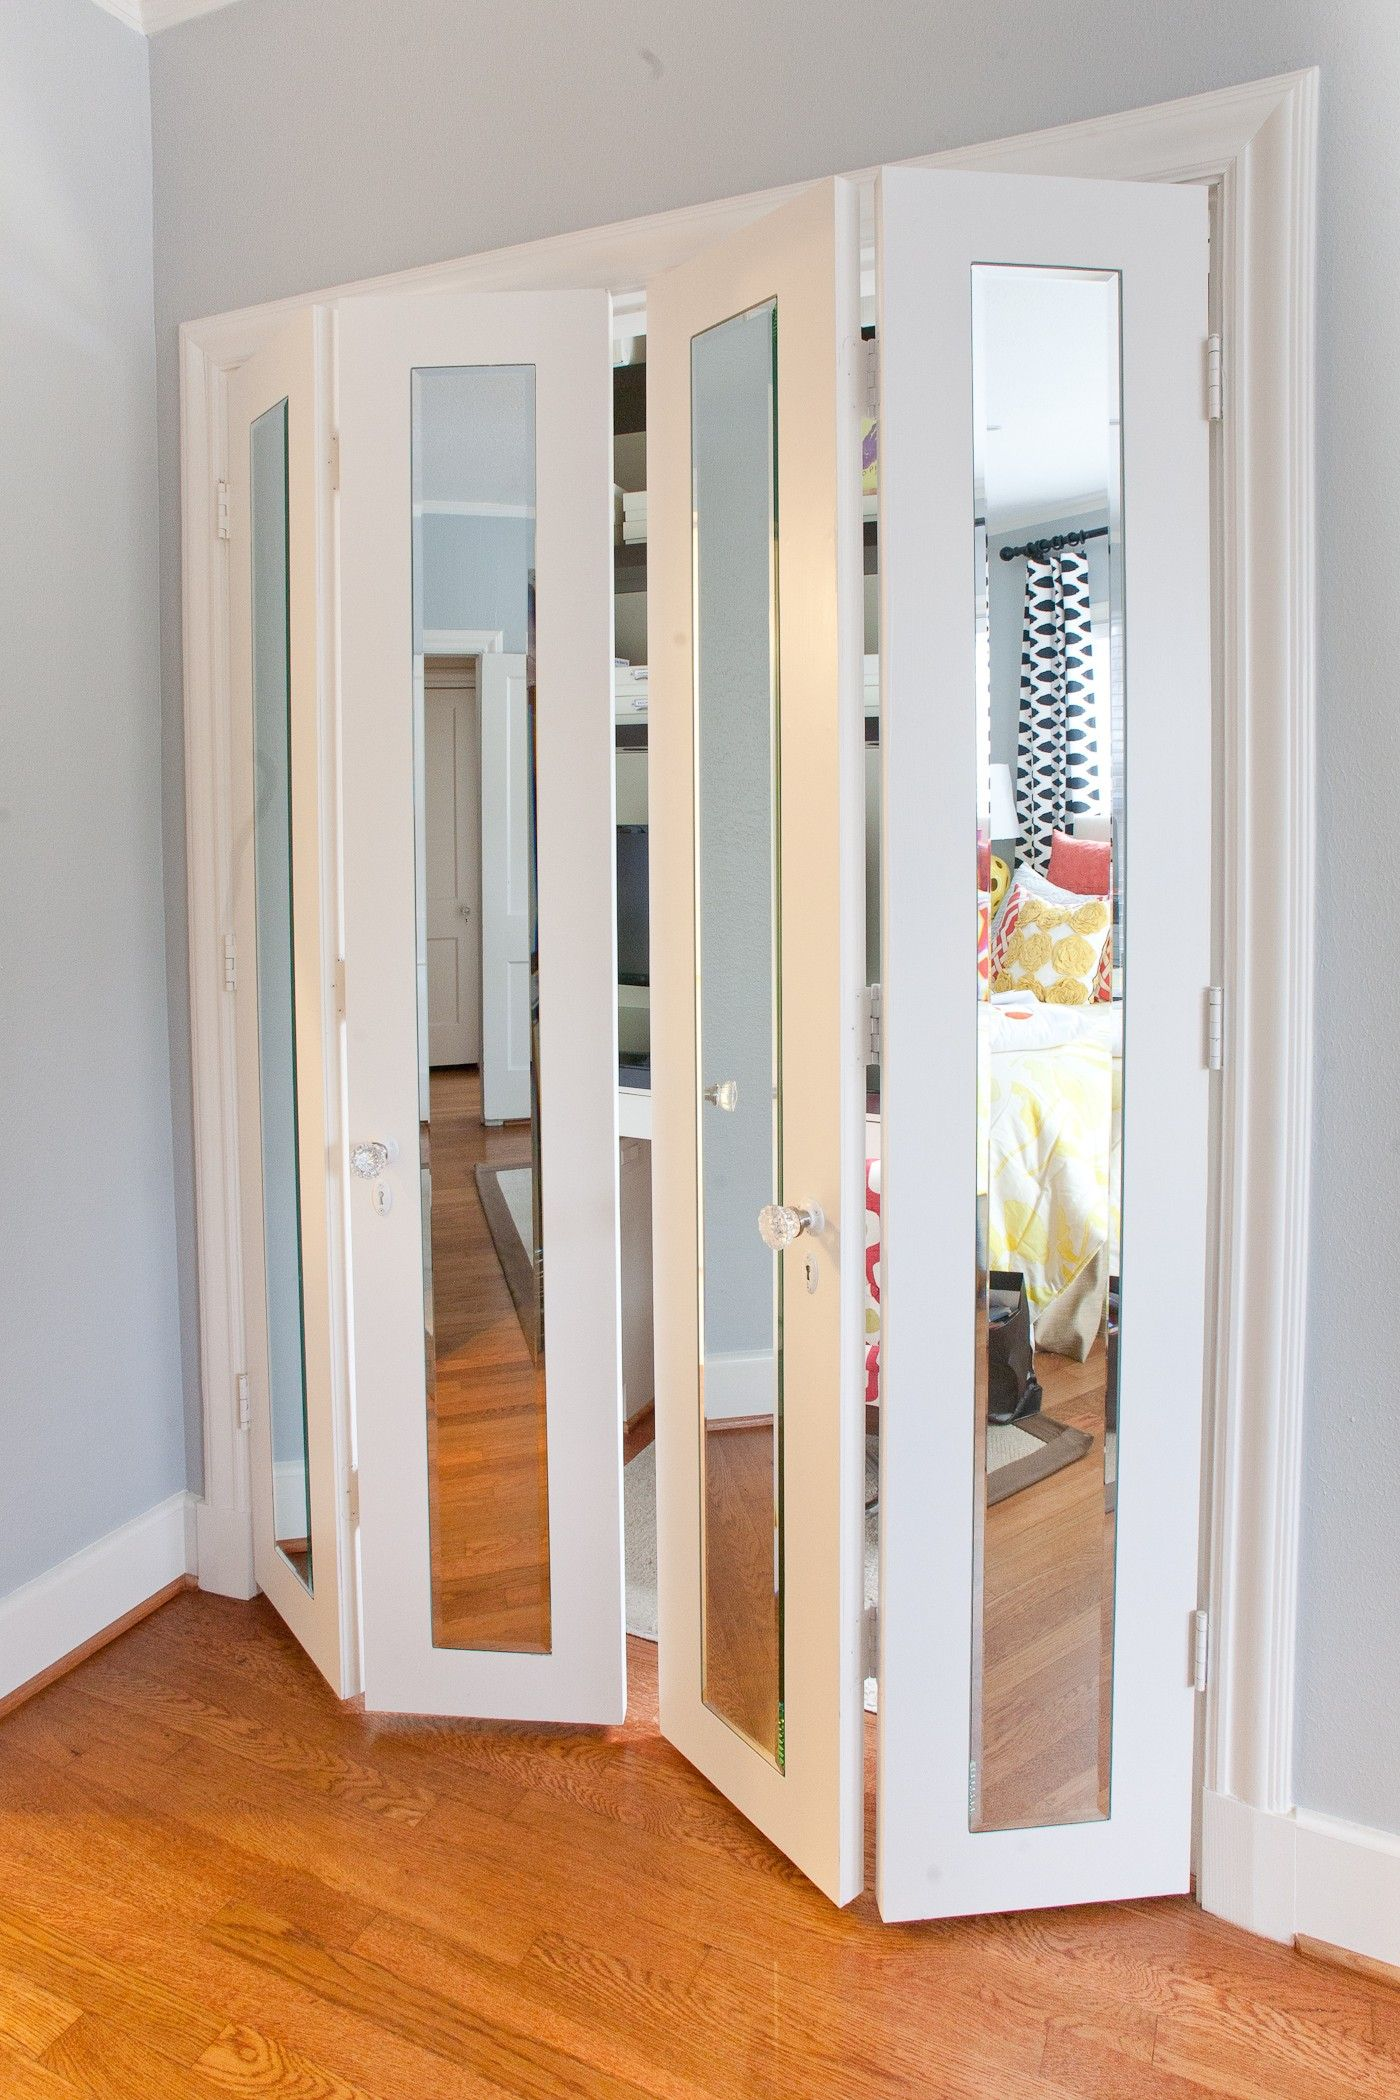 Mirrored Closet Doors Wardrobe Closet: Wardrobe Closet With Mirrored Doors